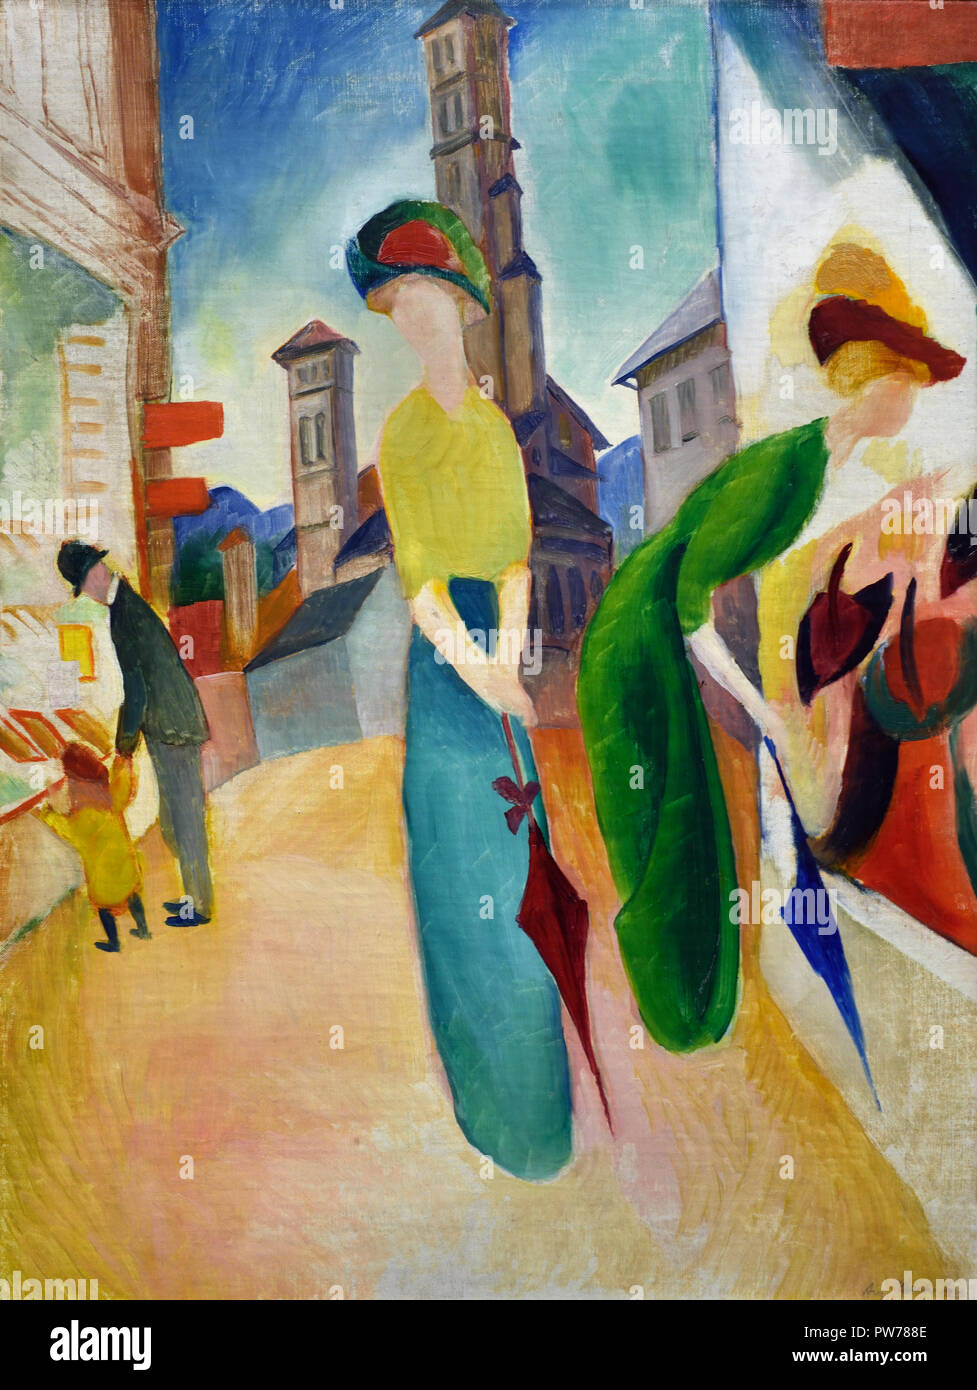 Two Women before the Hat Shop 1913 August Macke 1887-1914 German Germany Stock Photo